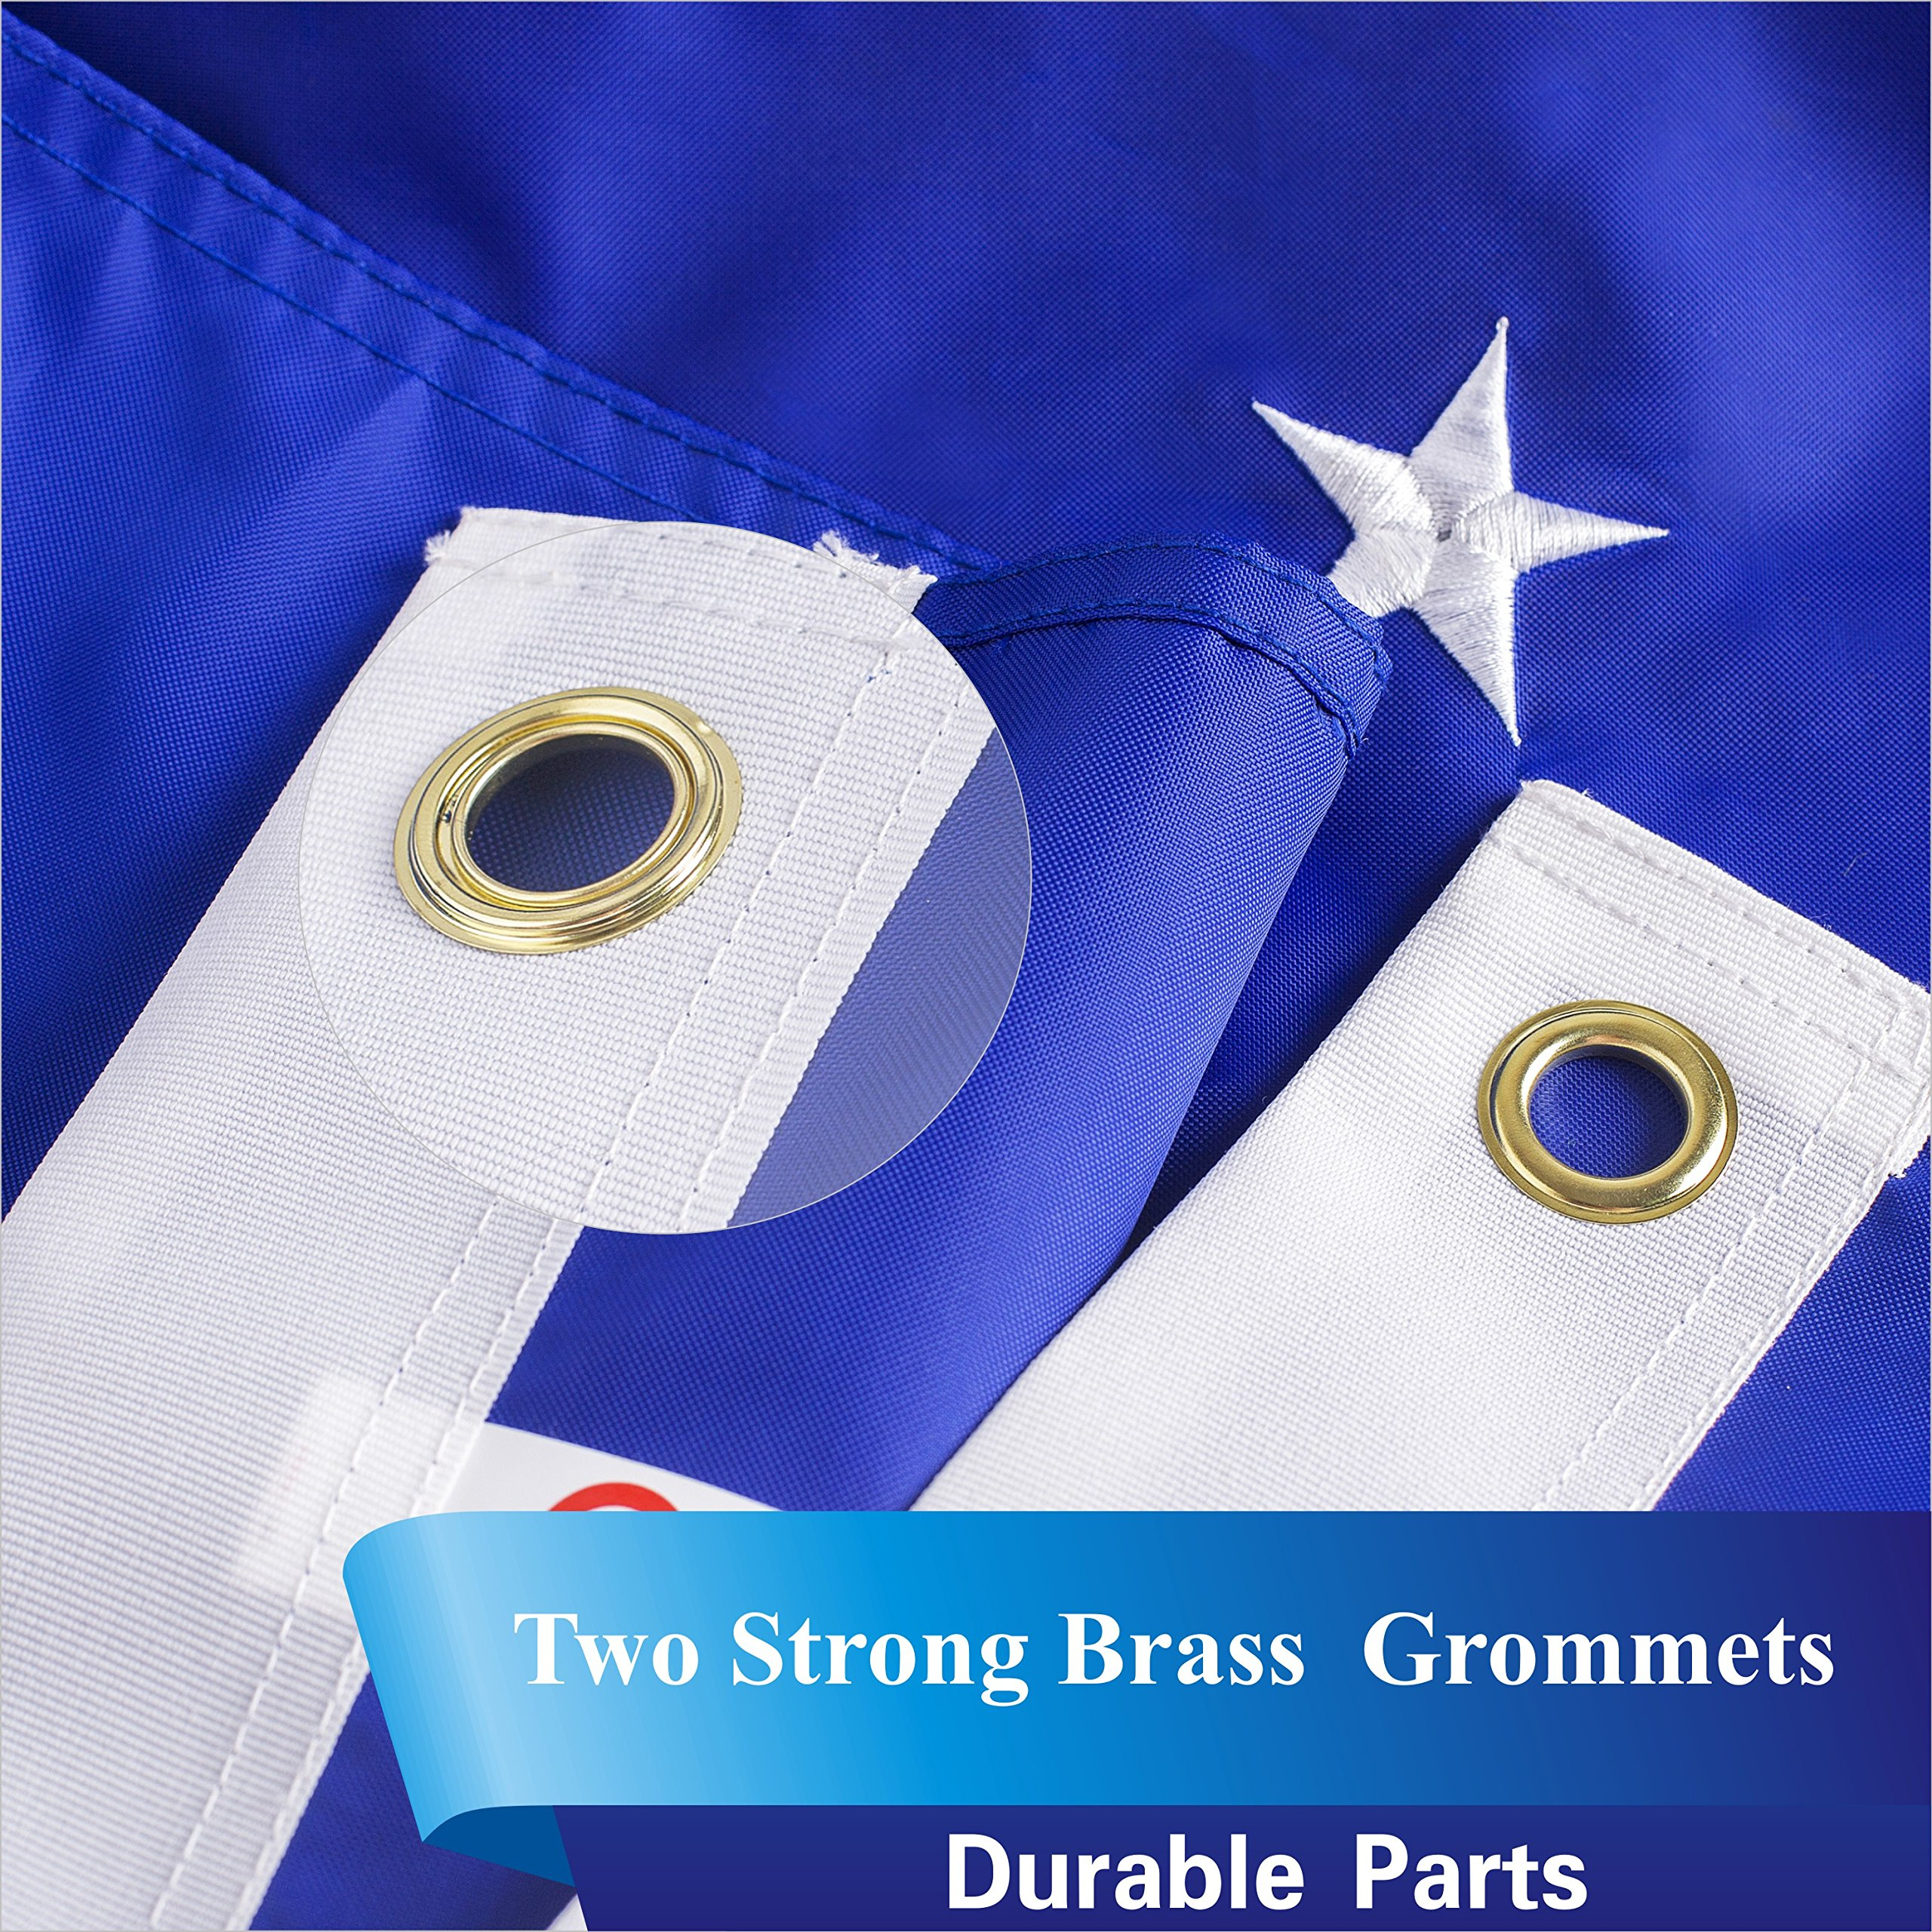 937e8484a66 G128 - US Air Force Flag Double Sided Embroidered 3x5 ft Flag Brass  Grommets   Flags   Patio